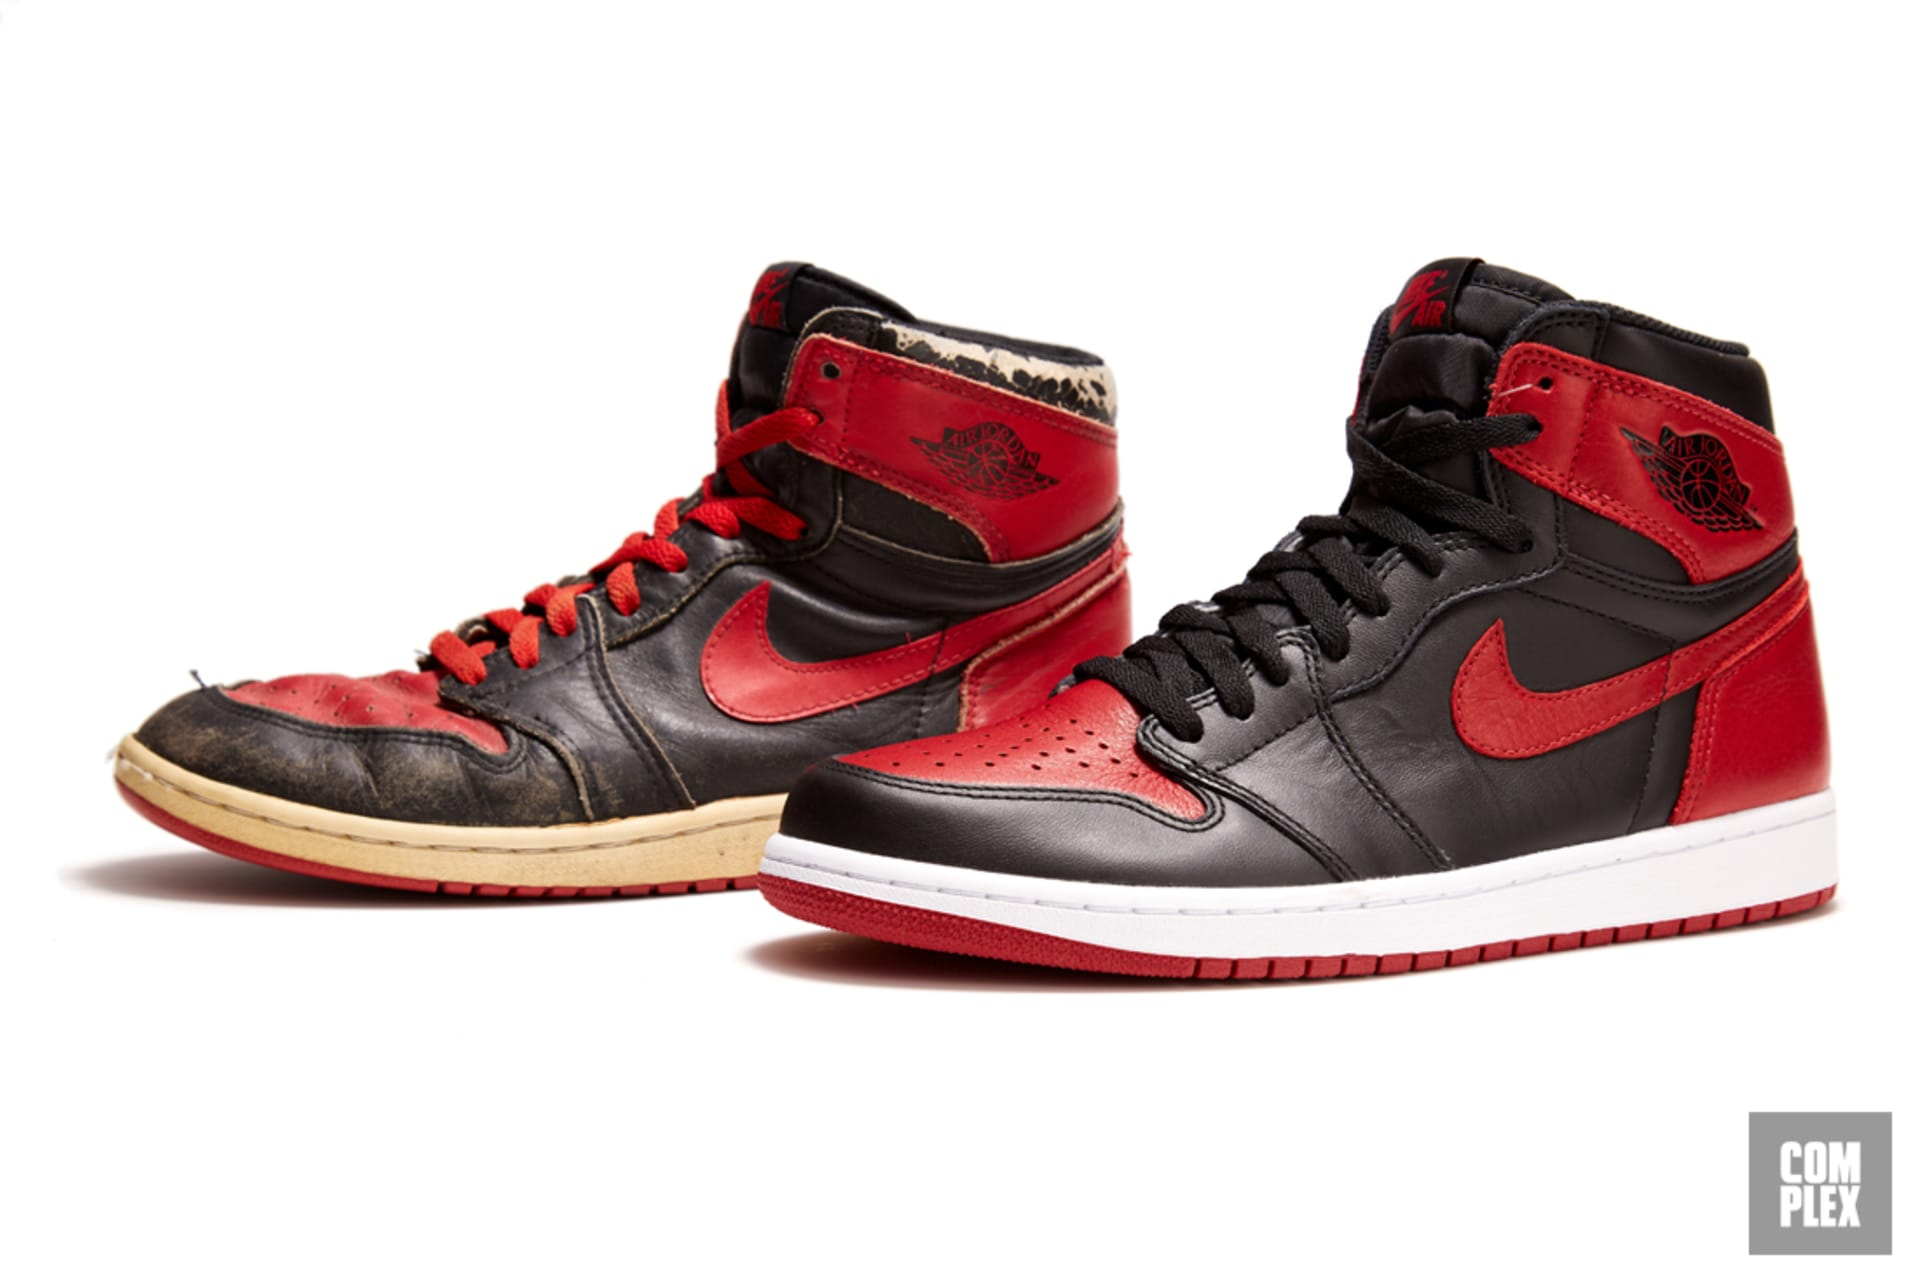 dc3af776c0deb0 The Evolution of the Black and Red Air Jordan 1